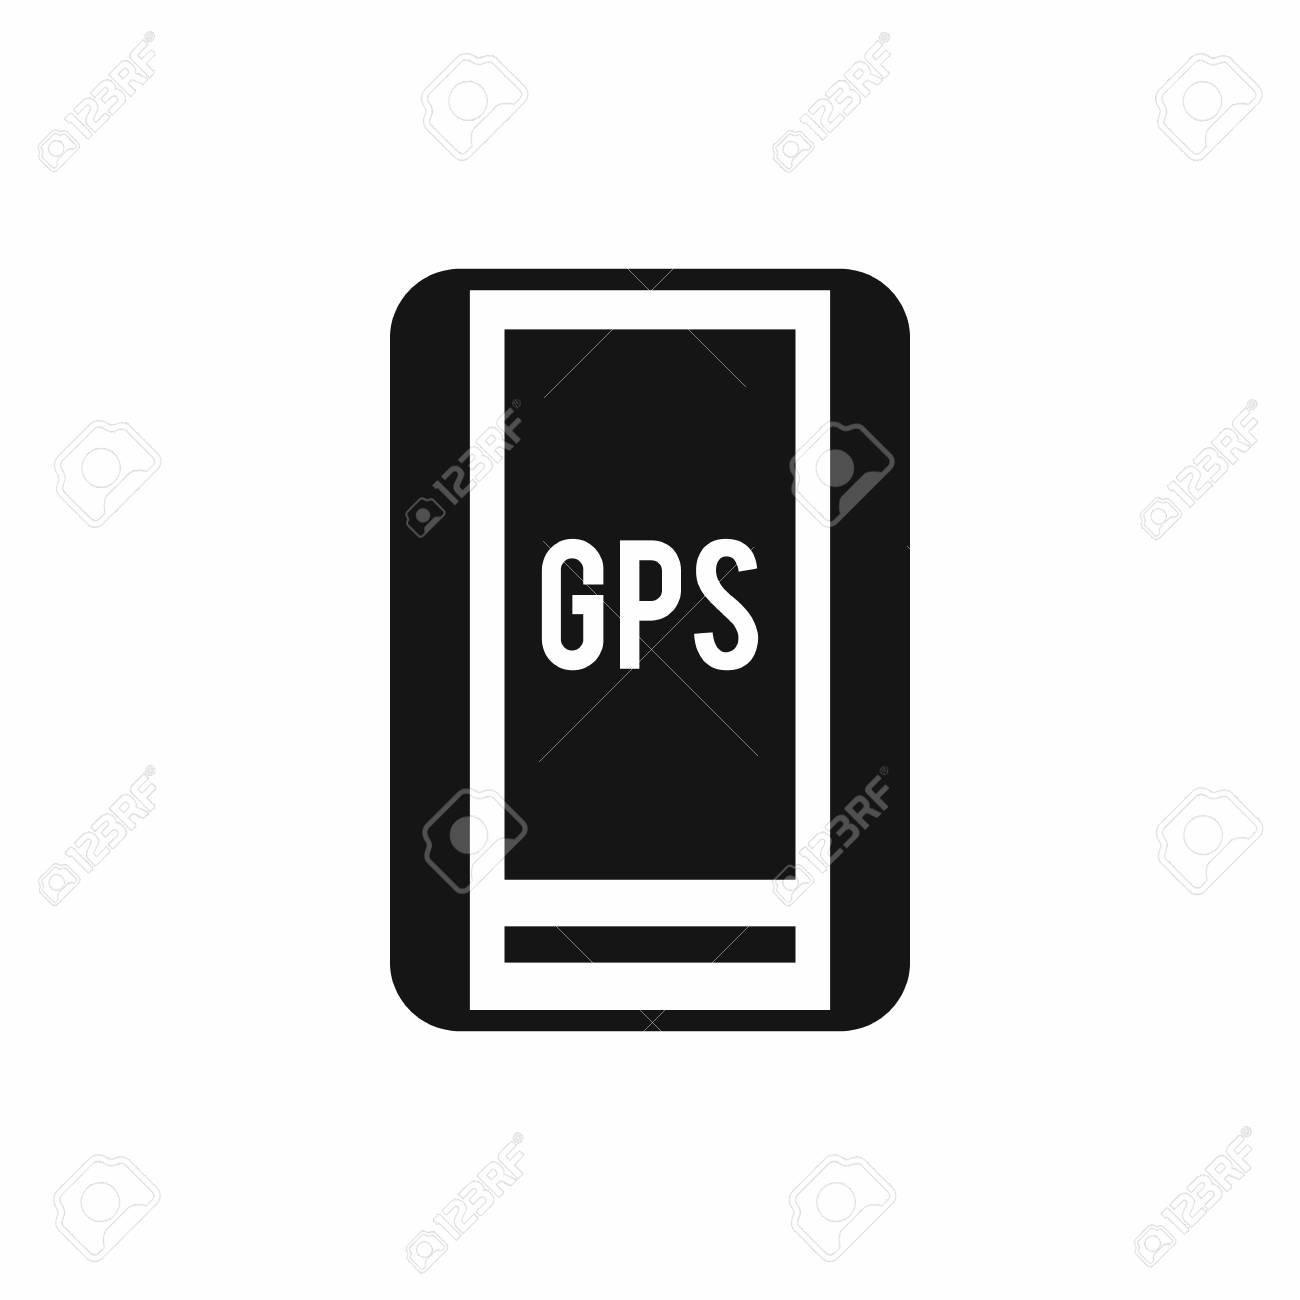 global positioning system icon in simple style isolated vector